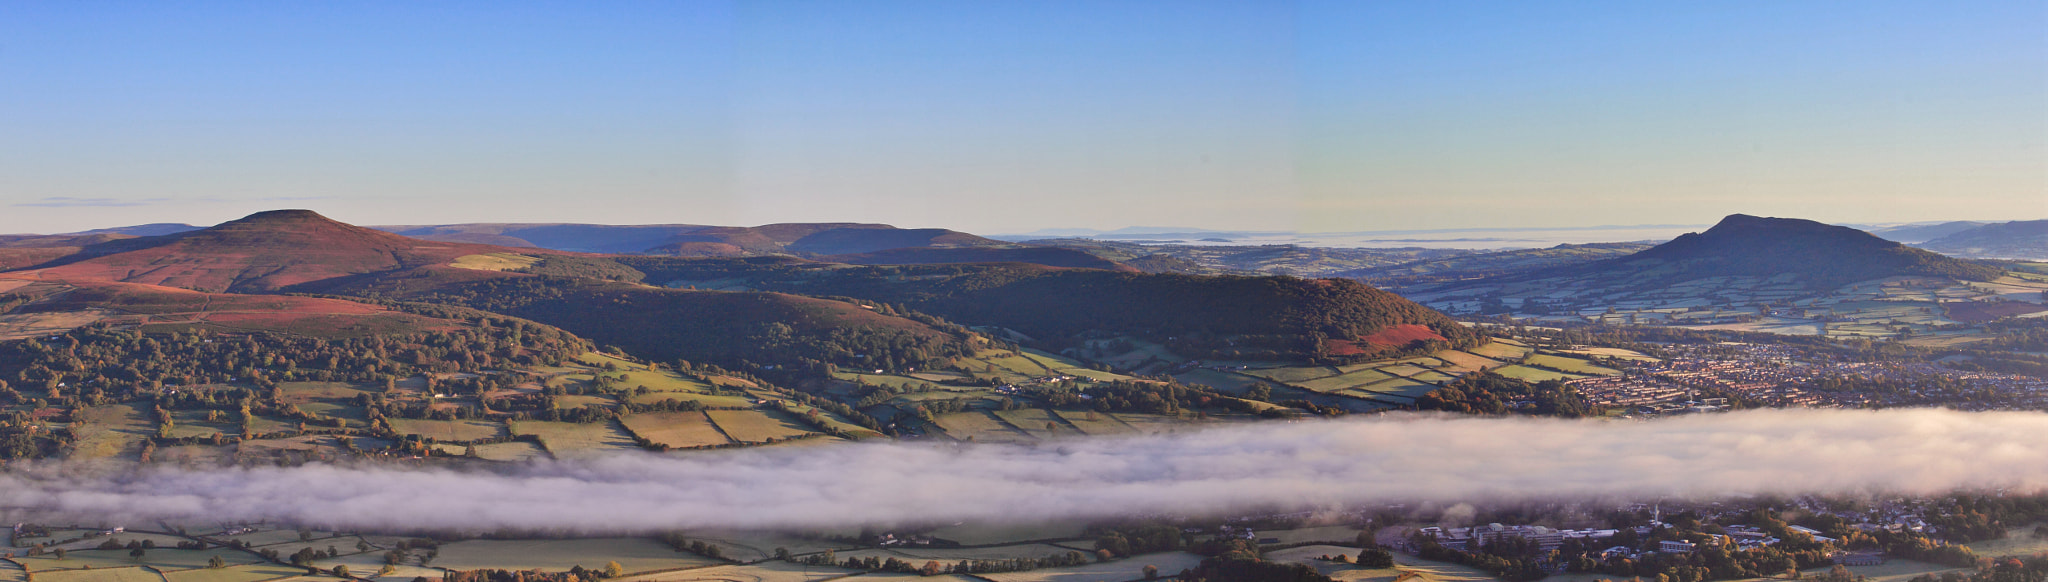 Photograph The brecon beacons black mountains abergavenny wales uk by black mountains photography on 500px